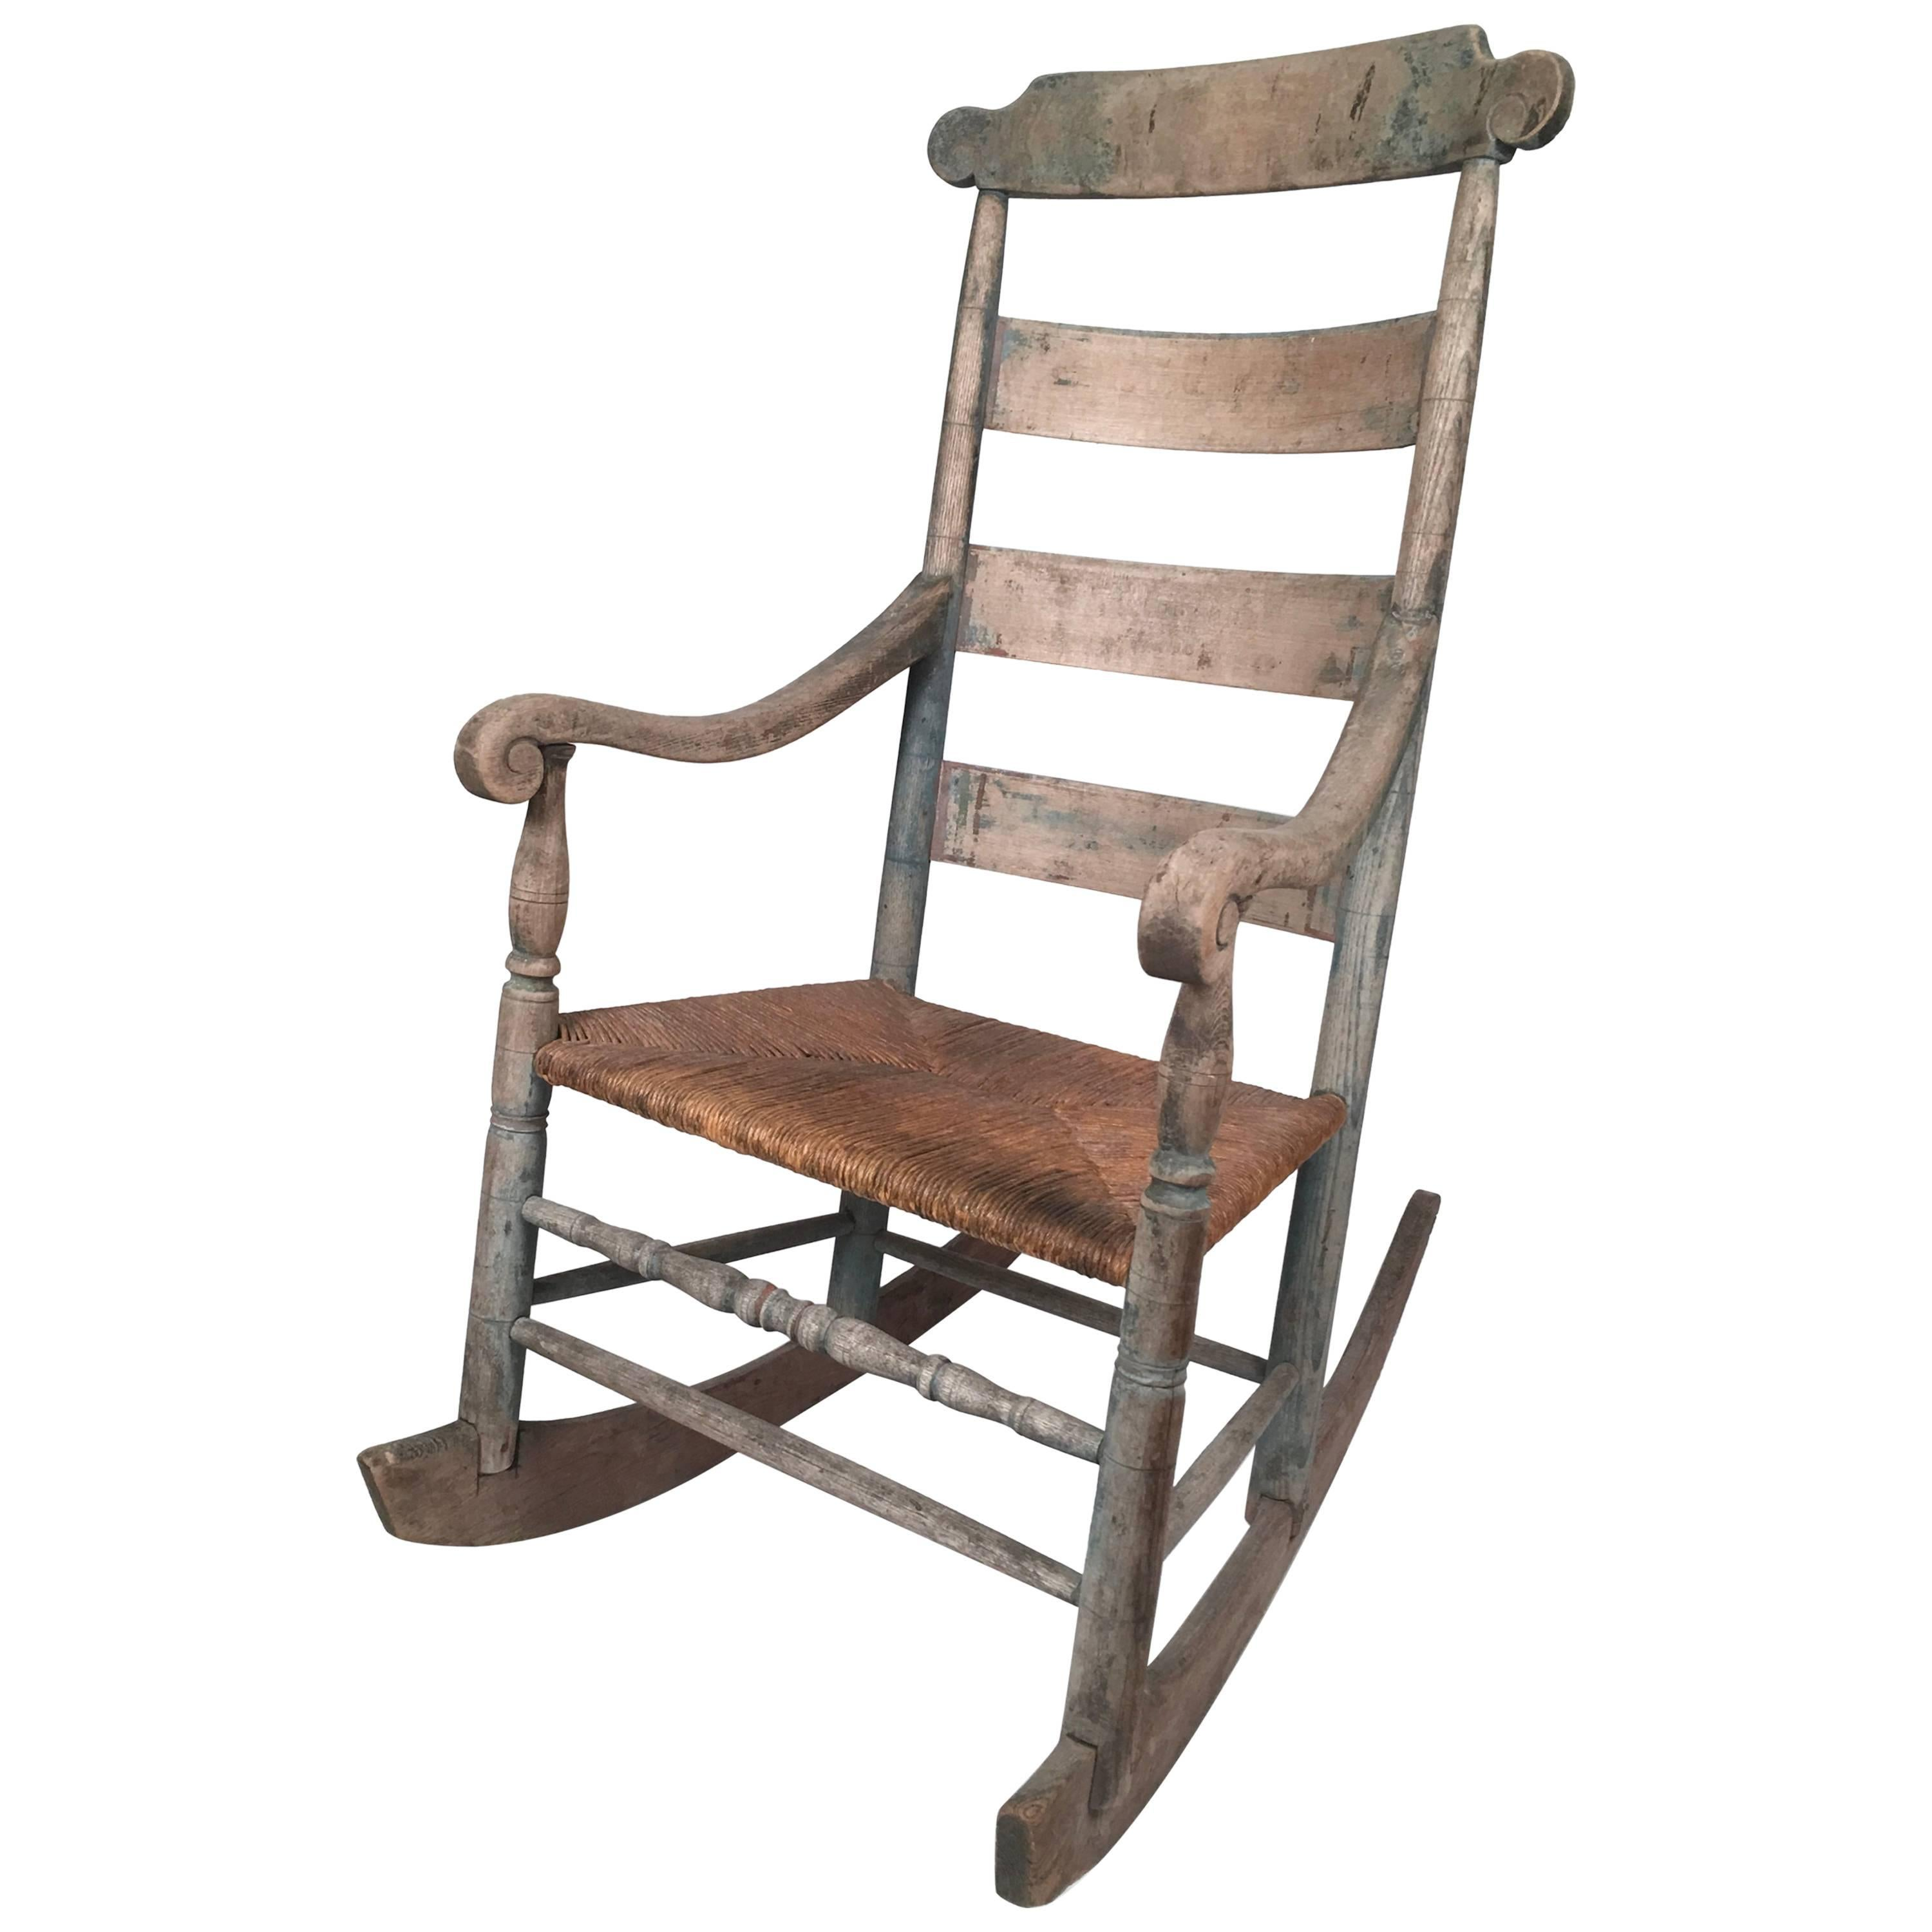 19th Century Country Rocking Chair With Old Blue Painted Surface For Sale